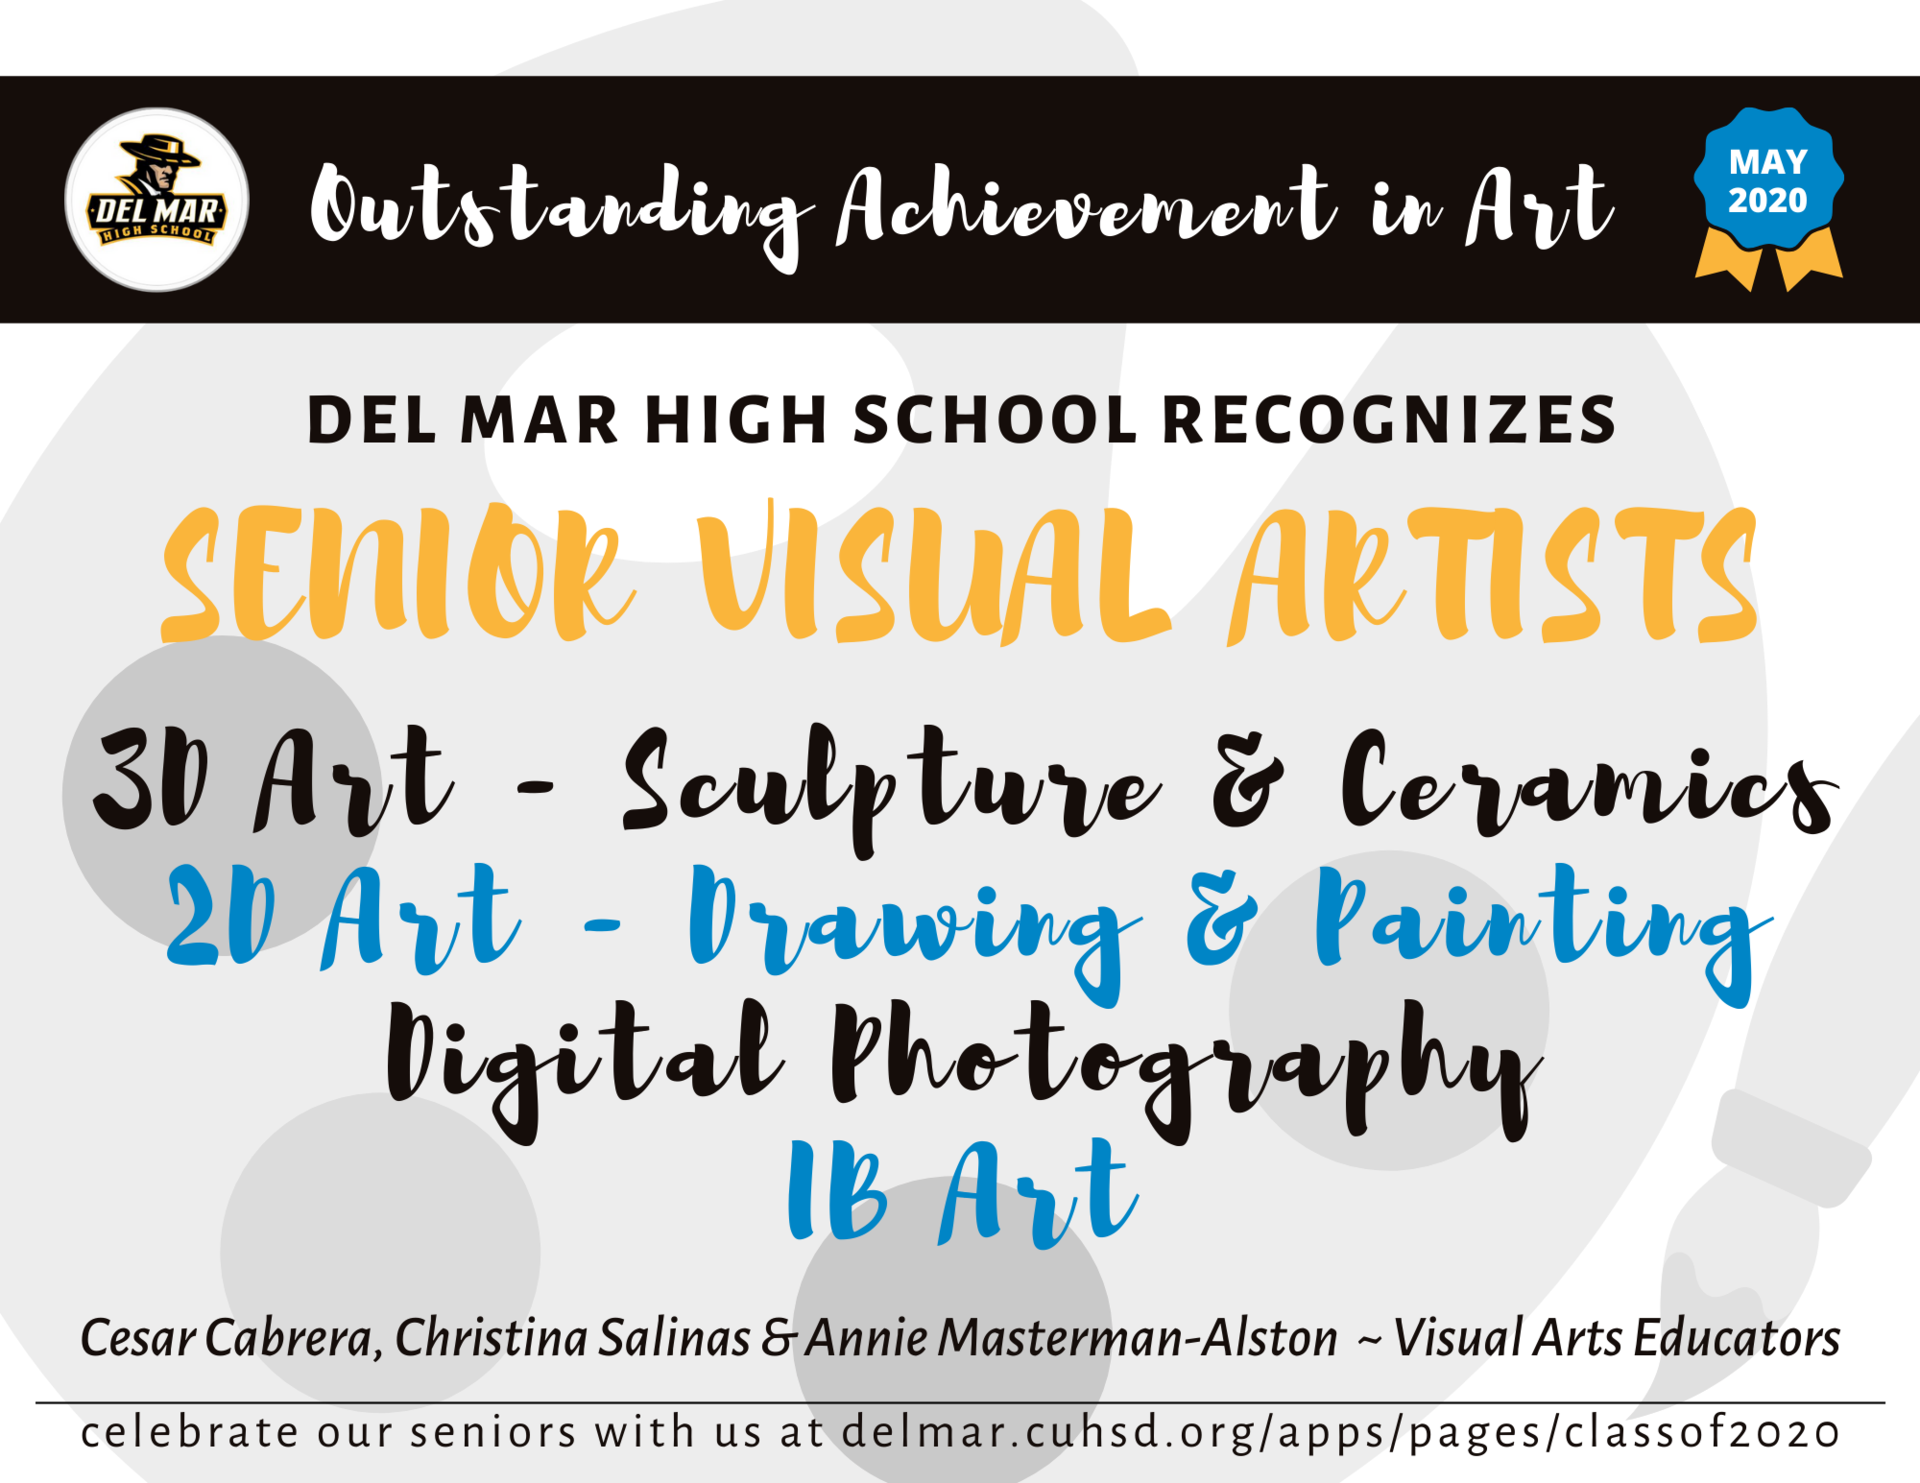 image of visual arts recognitions